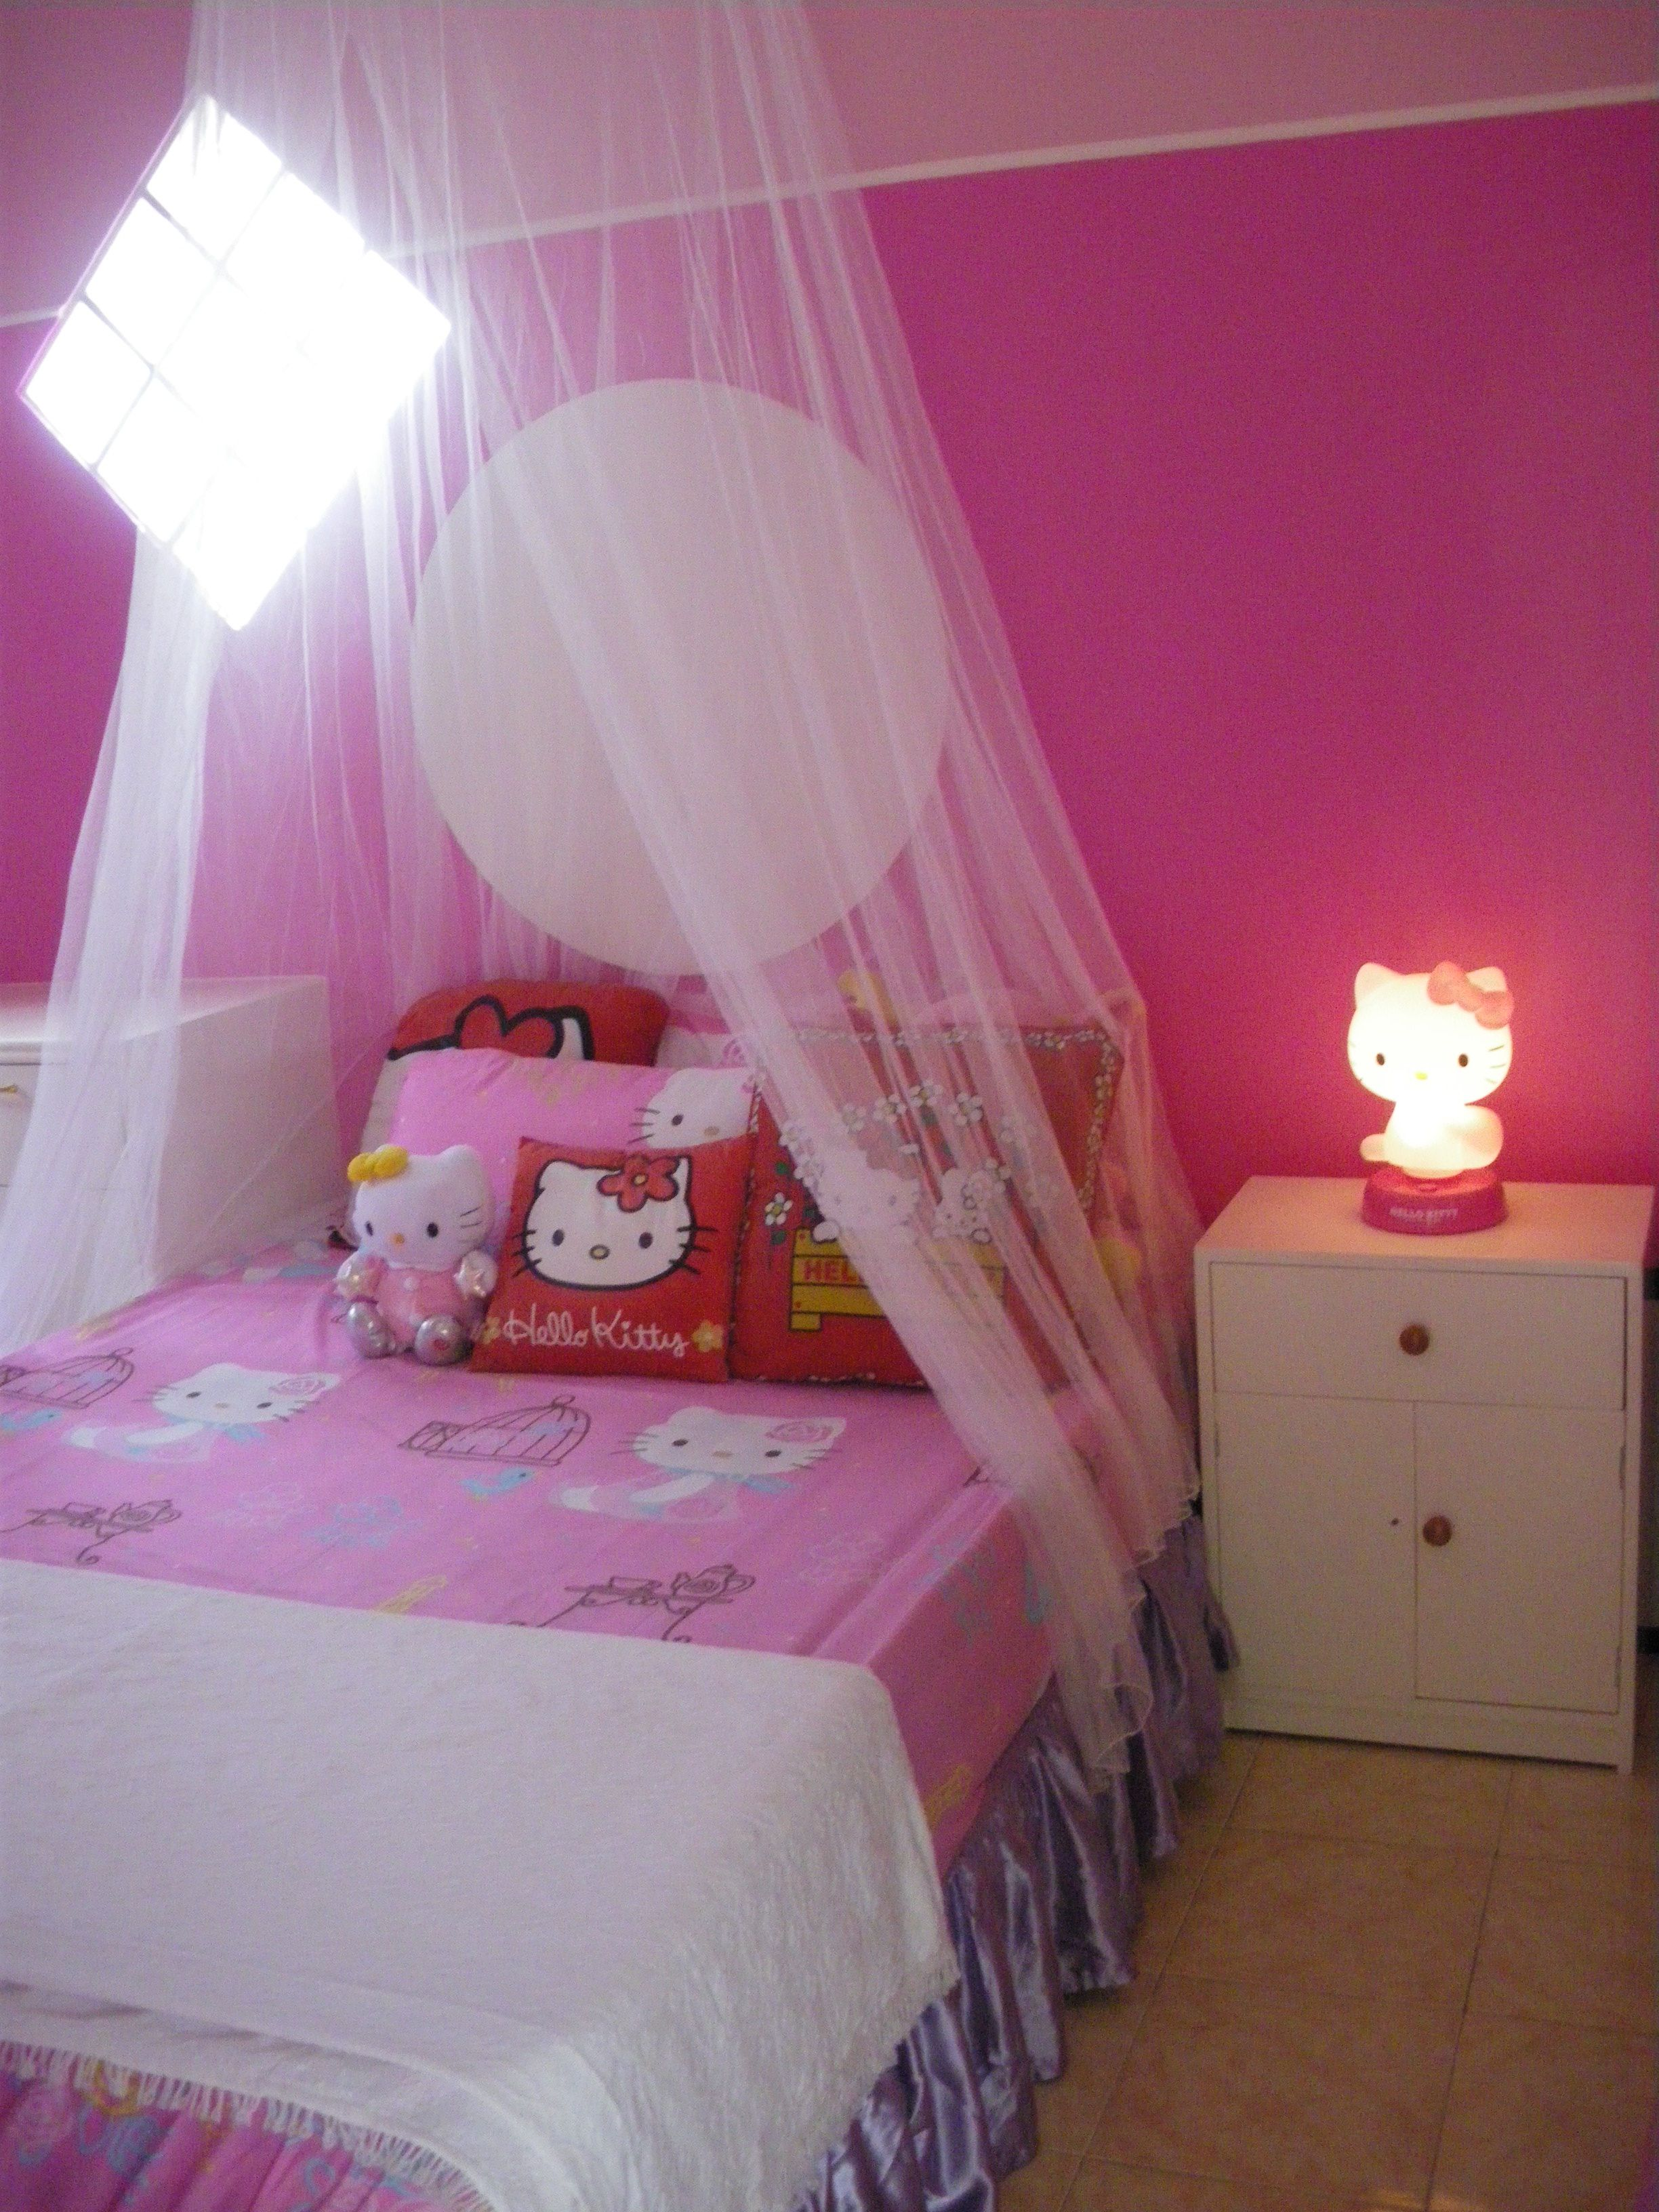 If This Were My Room I D Decorate The Walls With More Hk